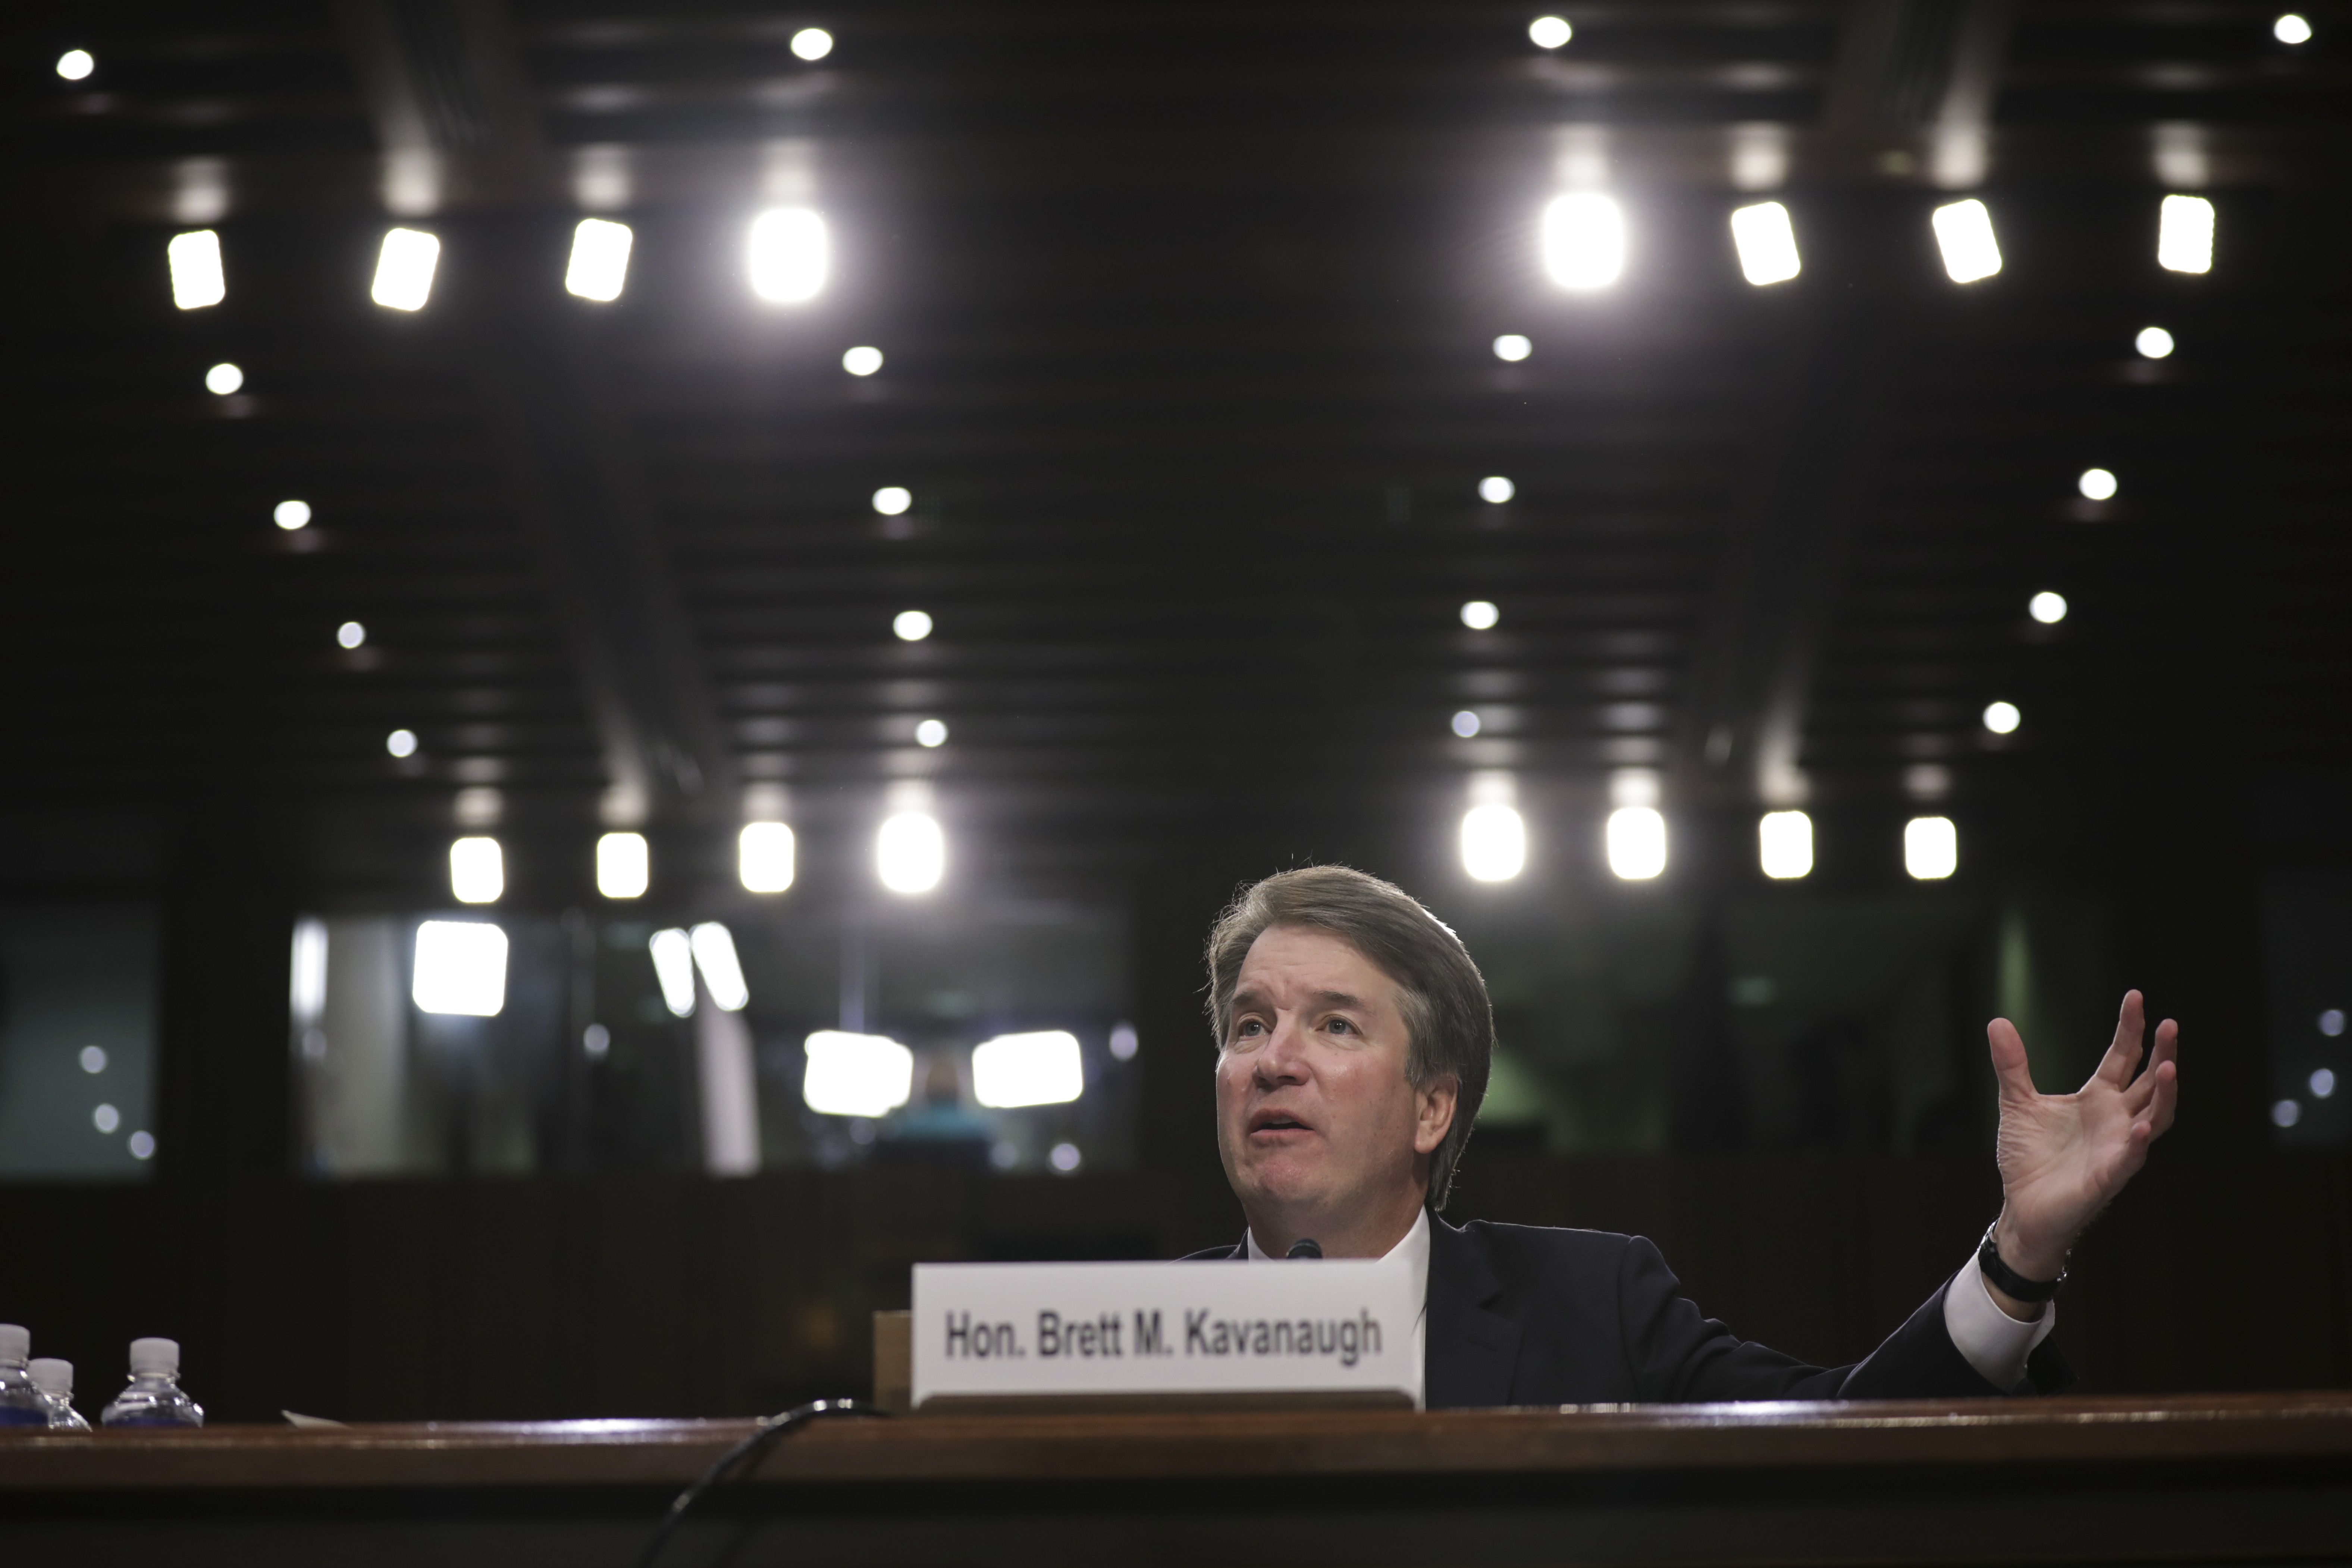 How Brett Kavanaugh will collide with a changing America